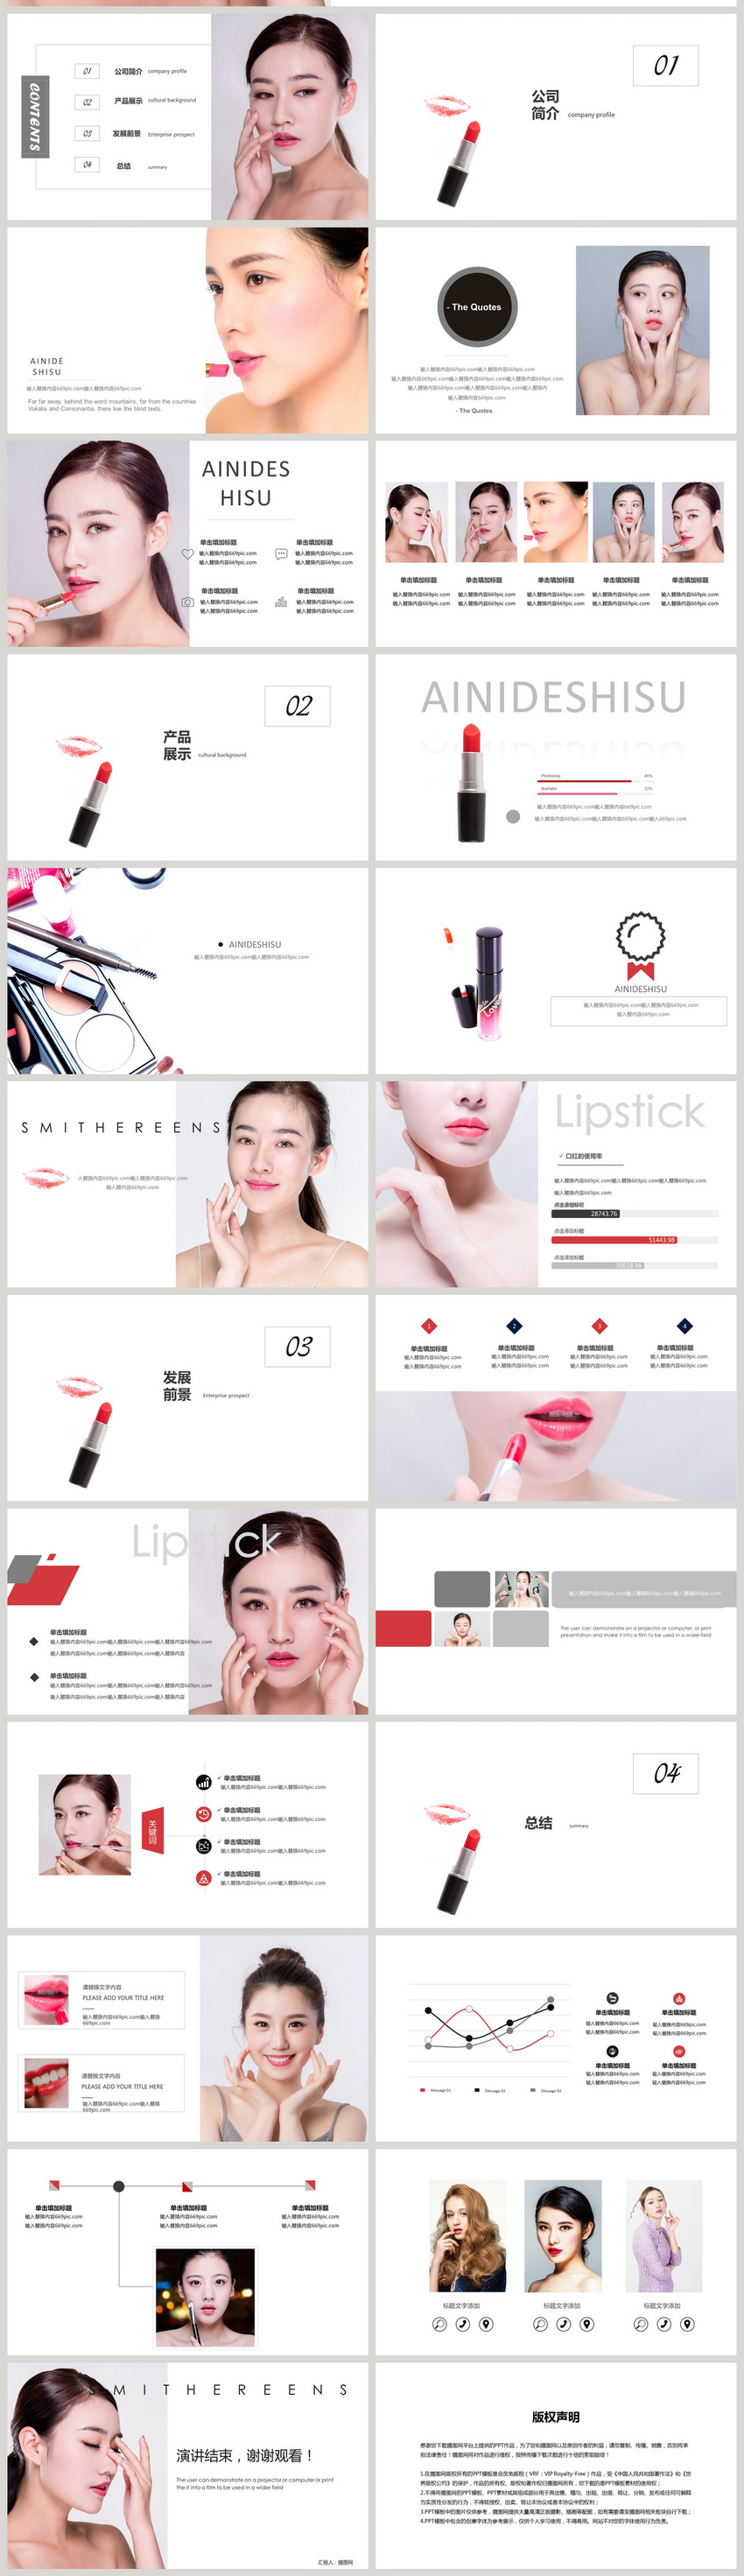 Atmospheric Cosmetics Product Release Ppt Template Powerpoint Templete Ppt Free Download 400116018 Lovepik Com